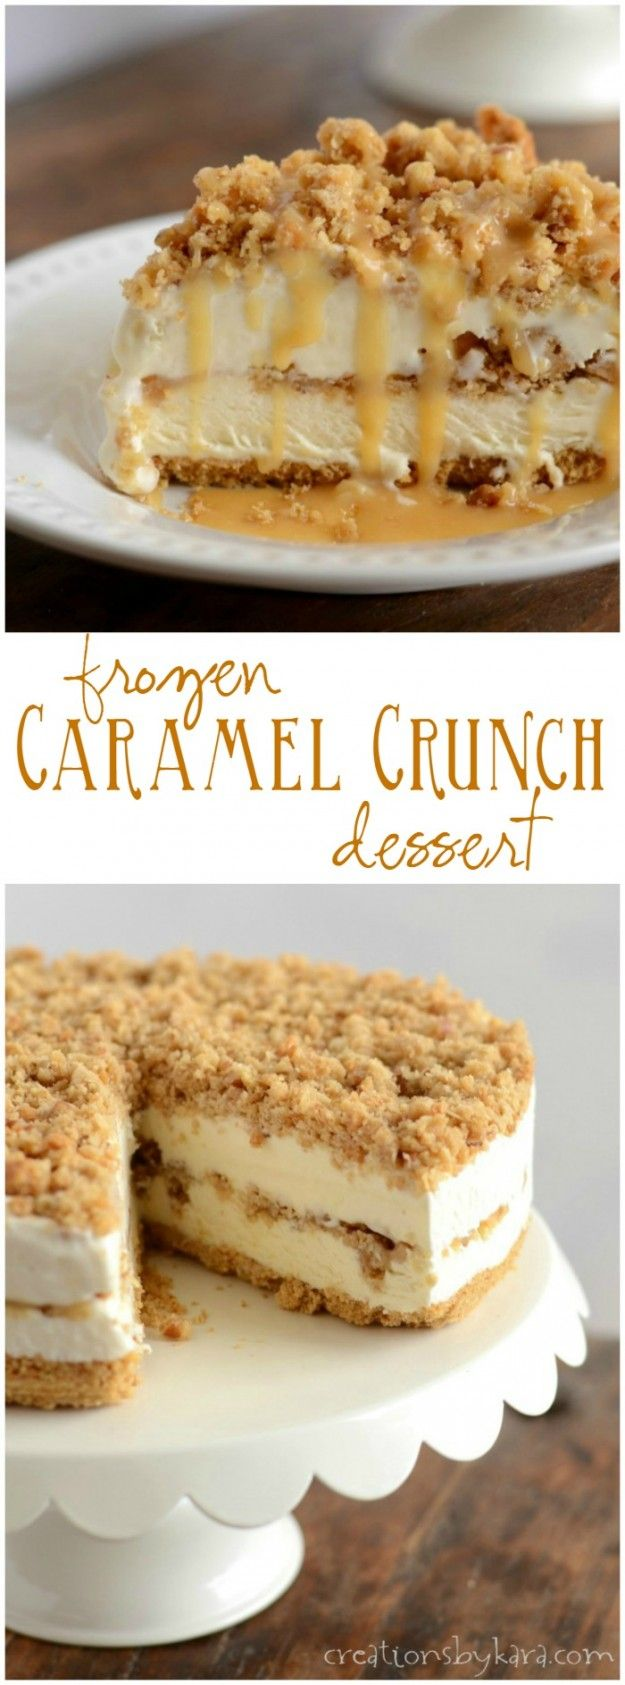 Recipe for Caramel Crunch Torte. A decadent frozen dessert with layers of rich creamy filling, crunchy topping, and caramel sauce. So good!